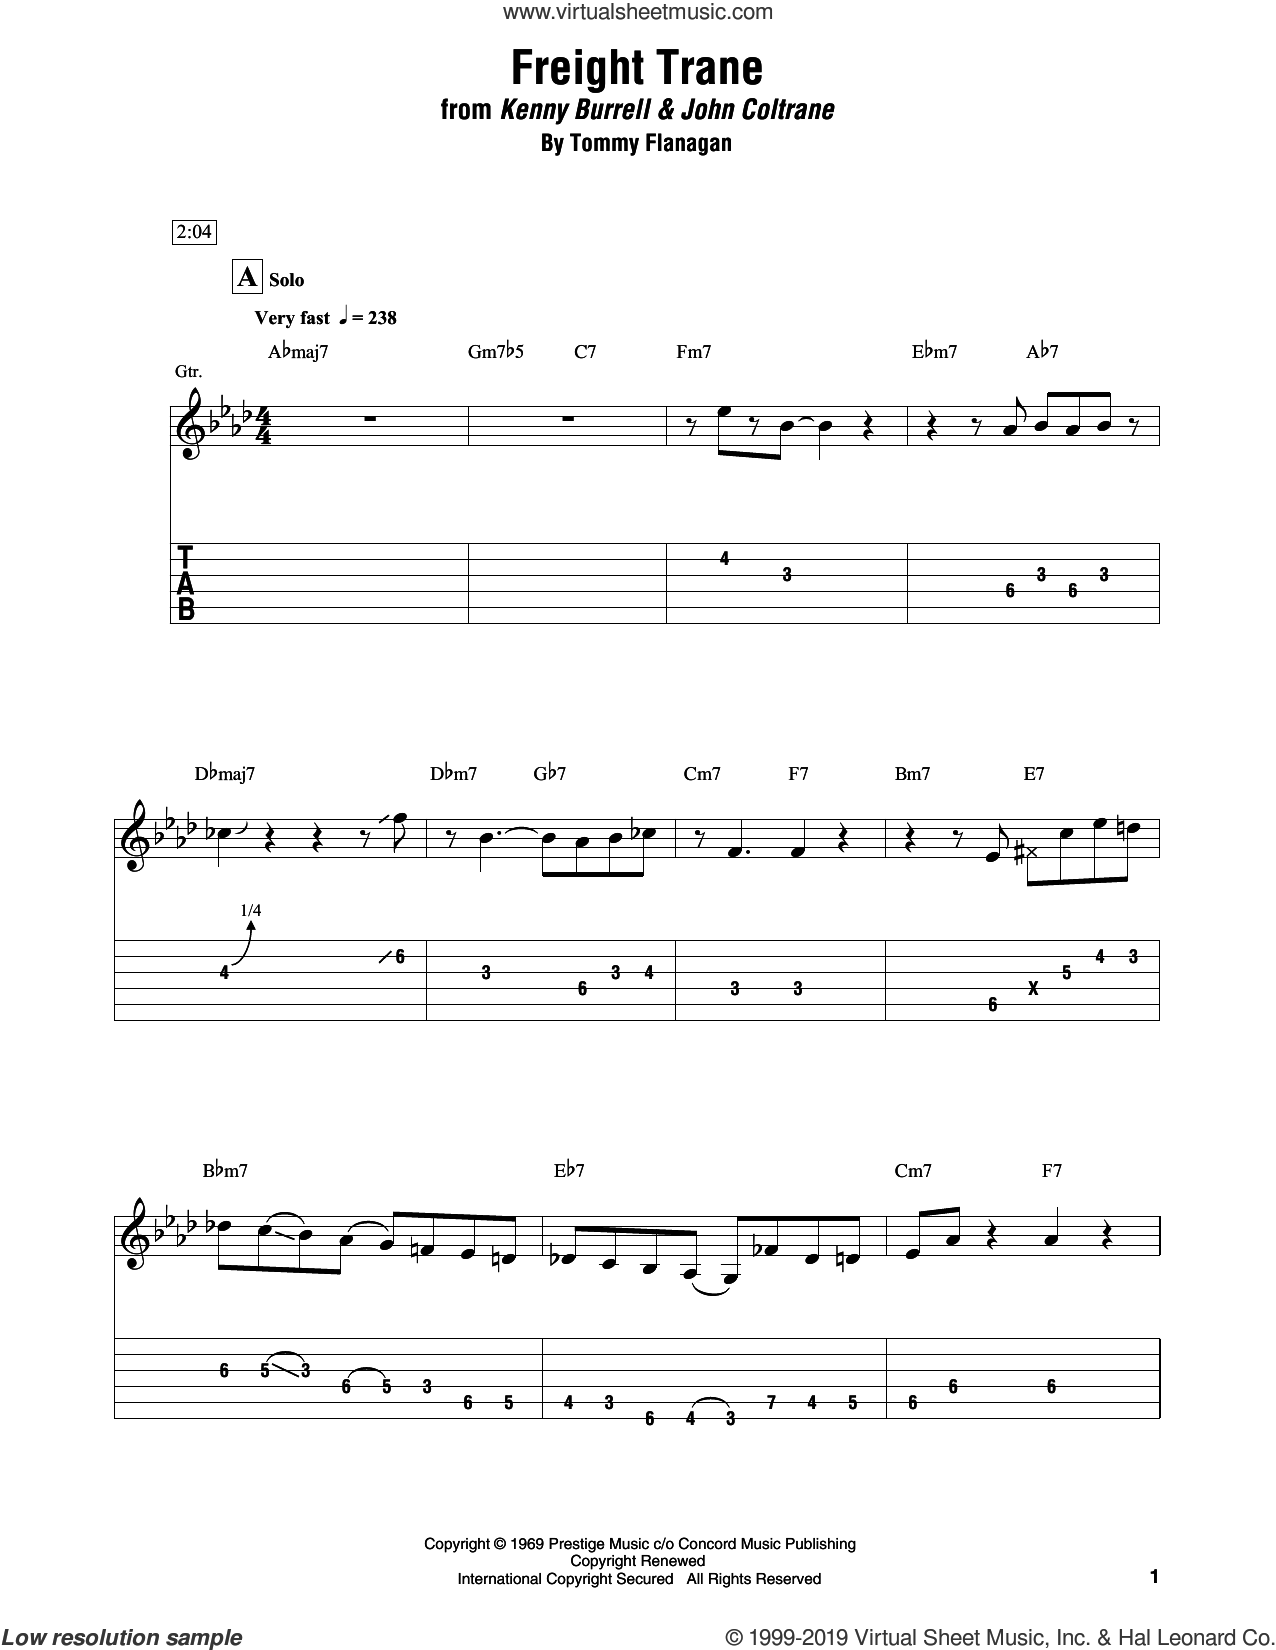 Freight Trane sheet music for electric guitar (transcription) by Kenny Burrell & John Coltrane and Tommy Flanagan, intermediate skill level